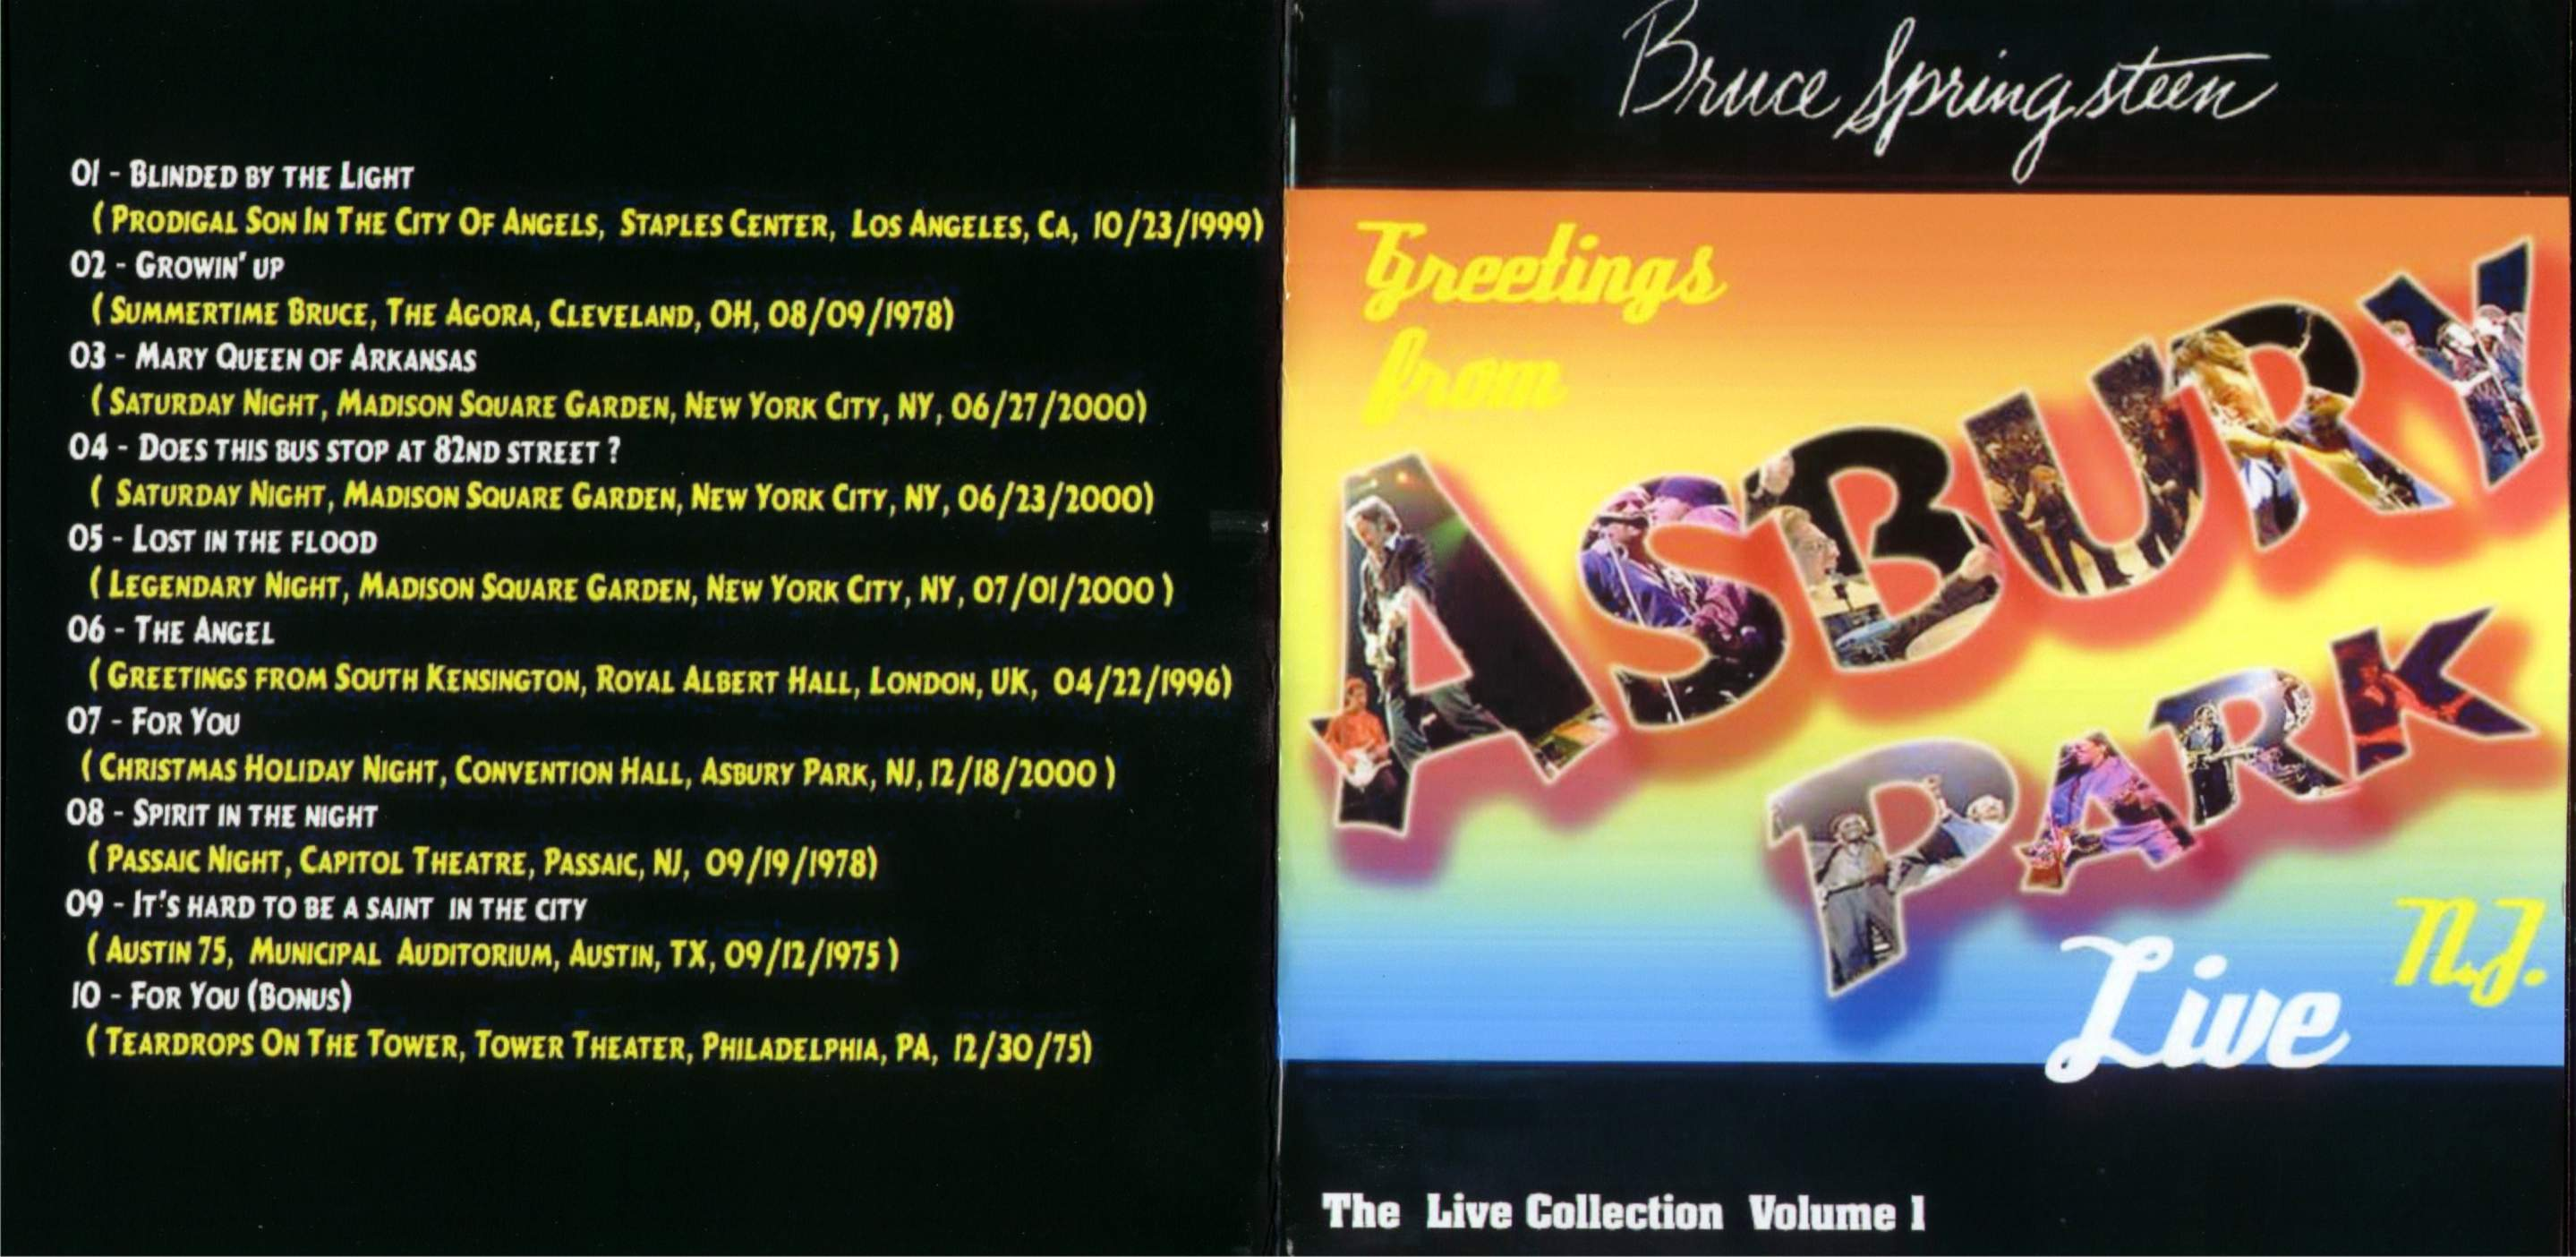 Artwork greetings from asbury park spl live collection title greetings from asbury park spl live collection date 0000 00 00 m4hsunfo